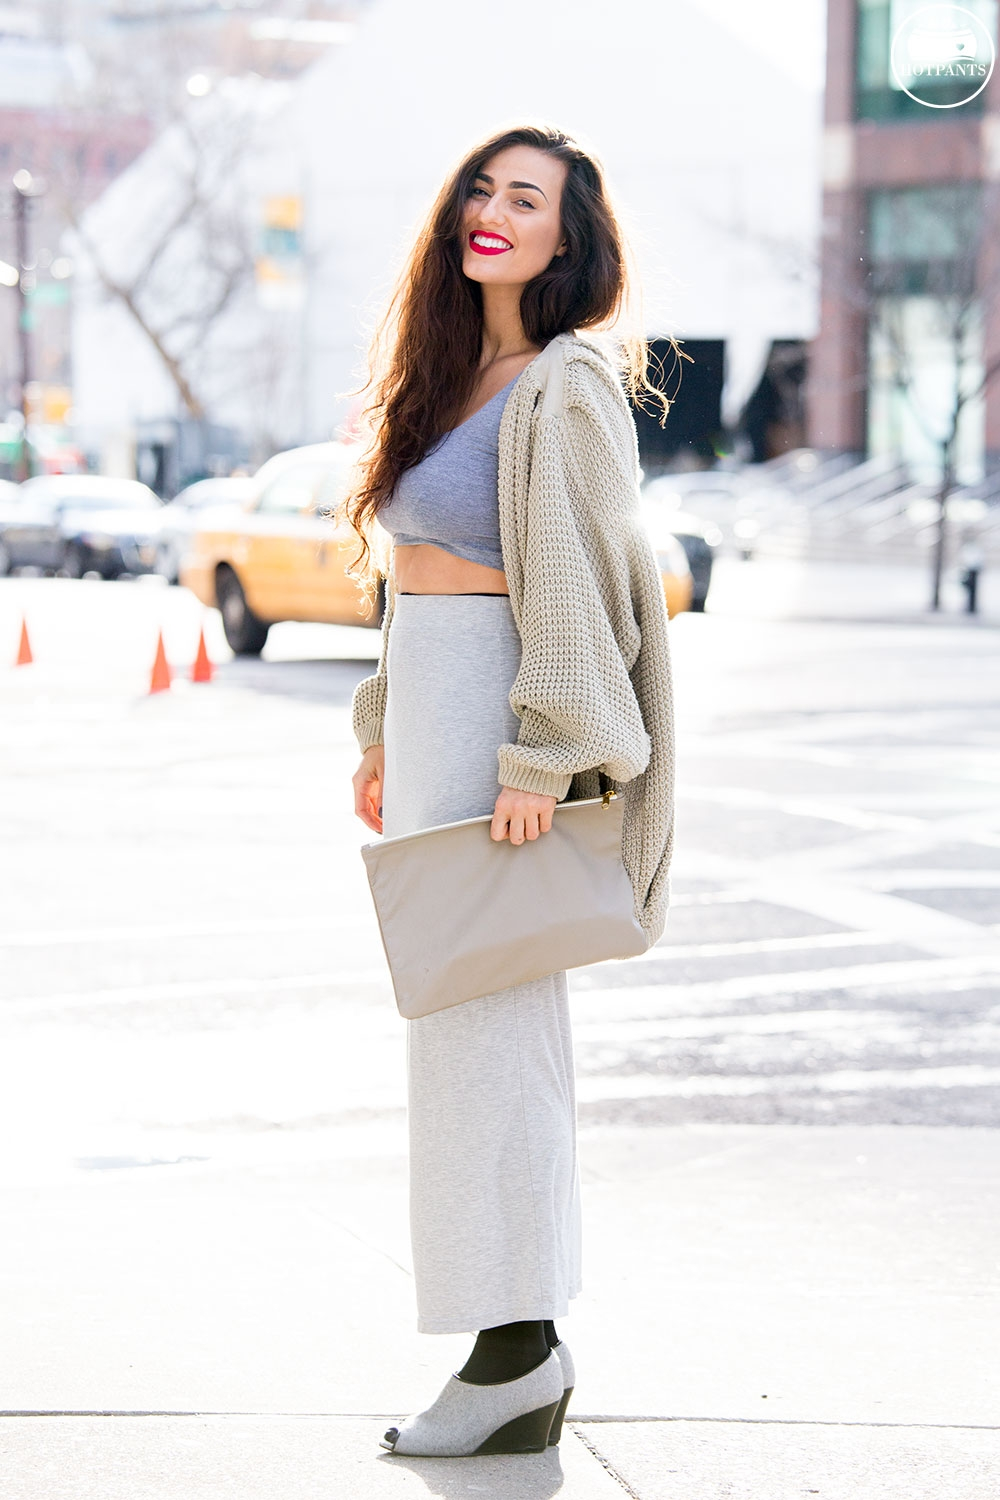 Long Hair Blogger New York City Fashion Winter Style Streetstyle What to wear in the winter